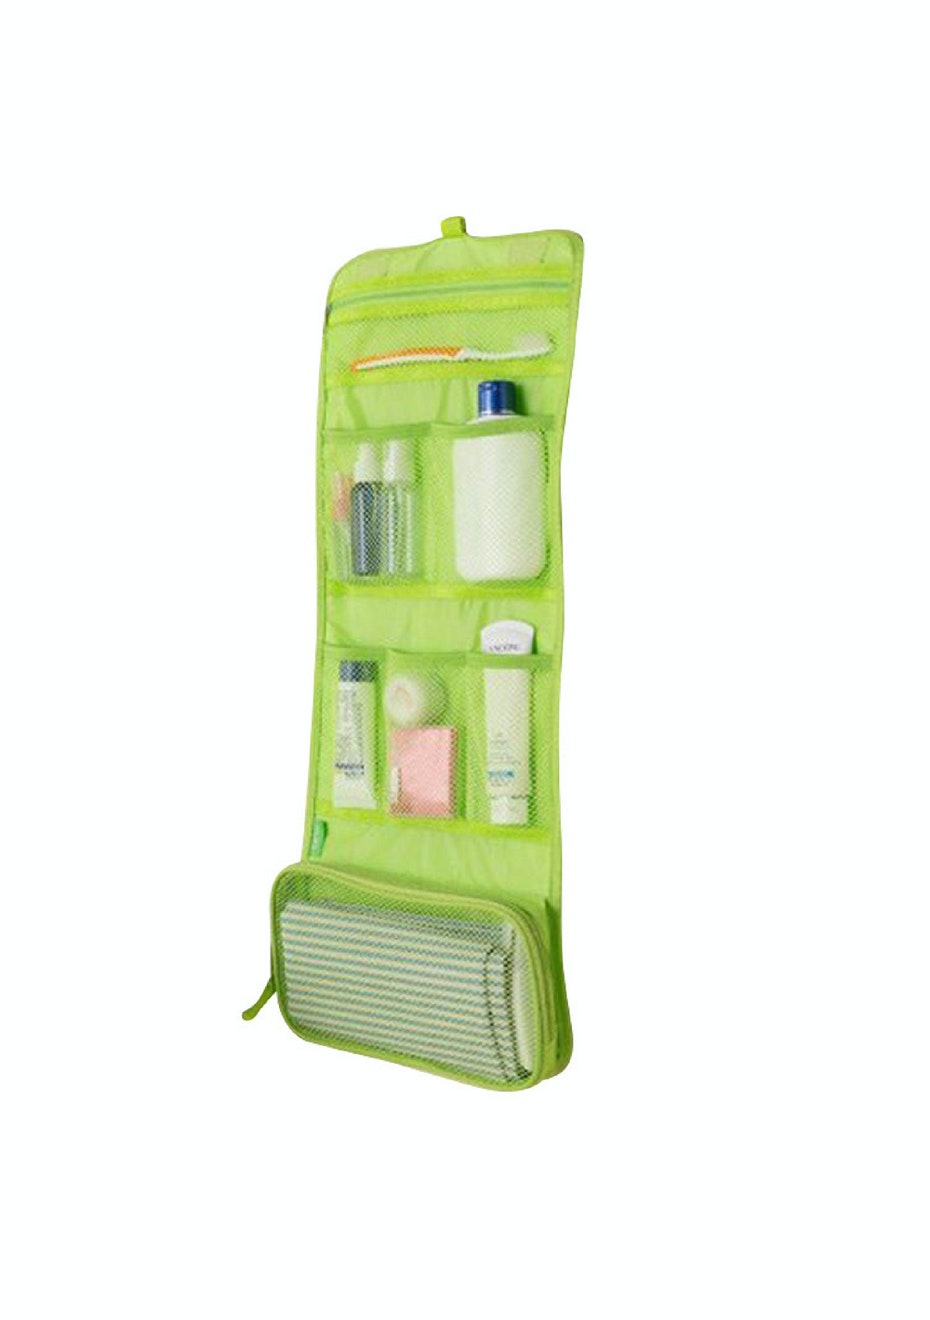 Cosmetic Toiletry Travel Bag & Organiser -Folding/Hanging